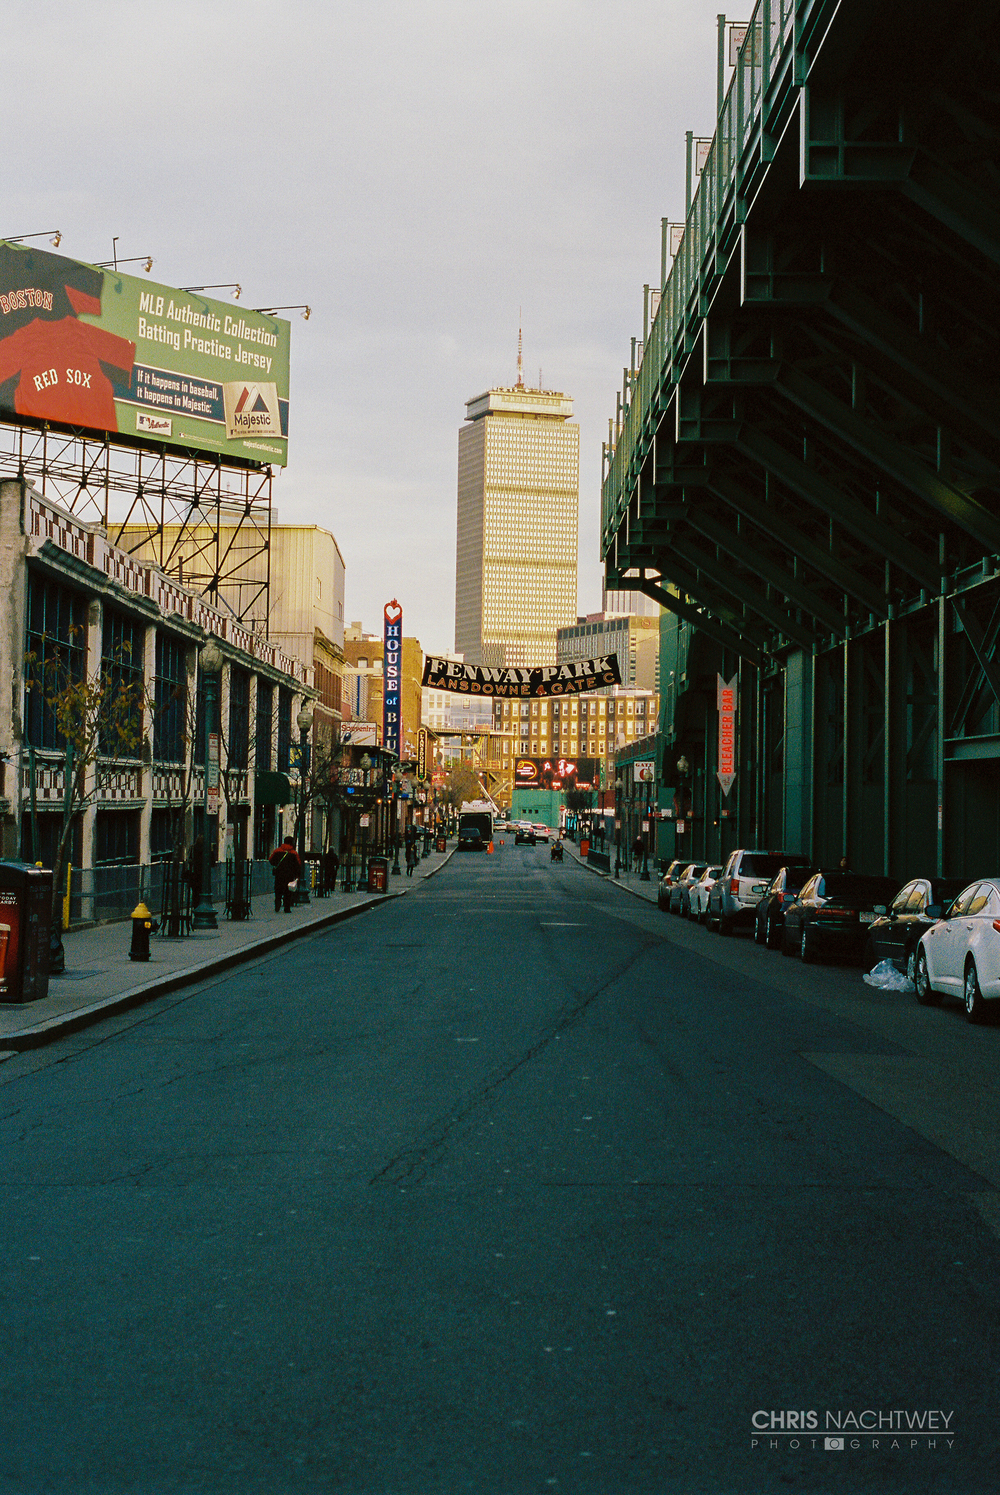 chris_nachtwey_connecticut_film_photographer_fenway_park-2.jpg